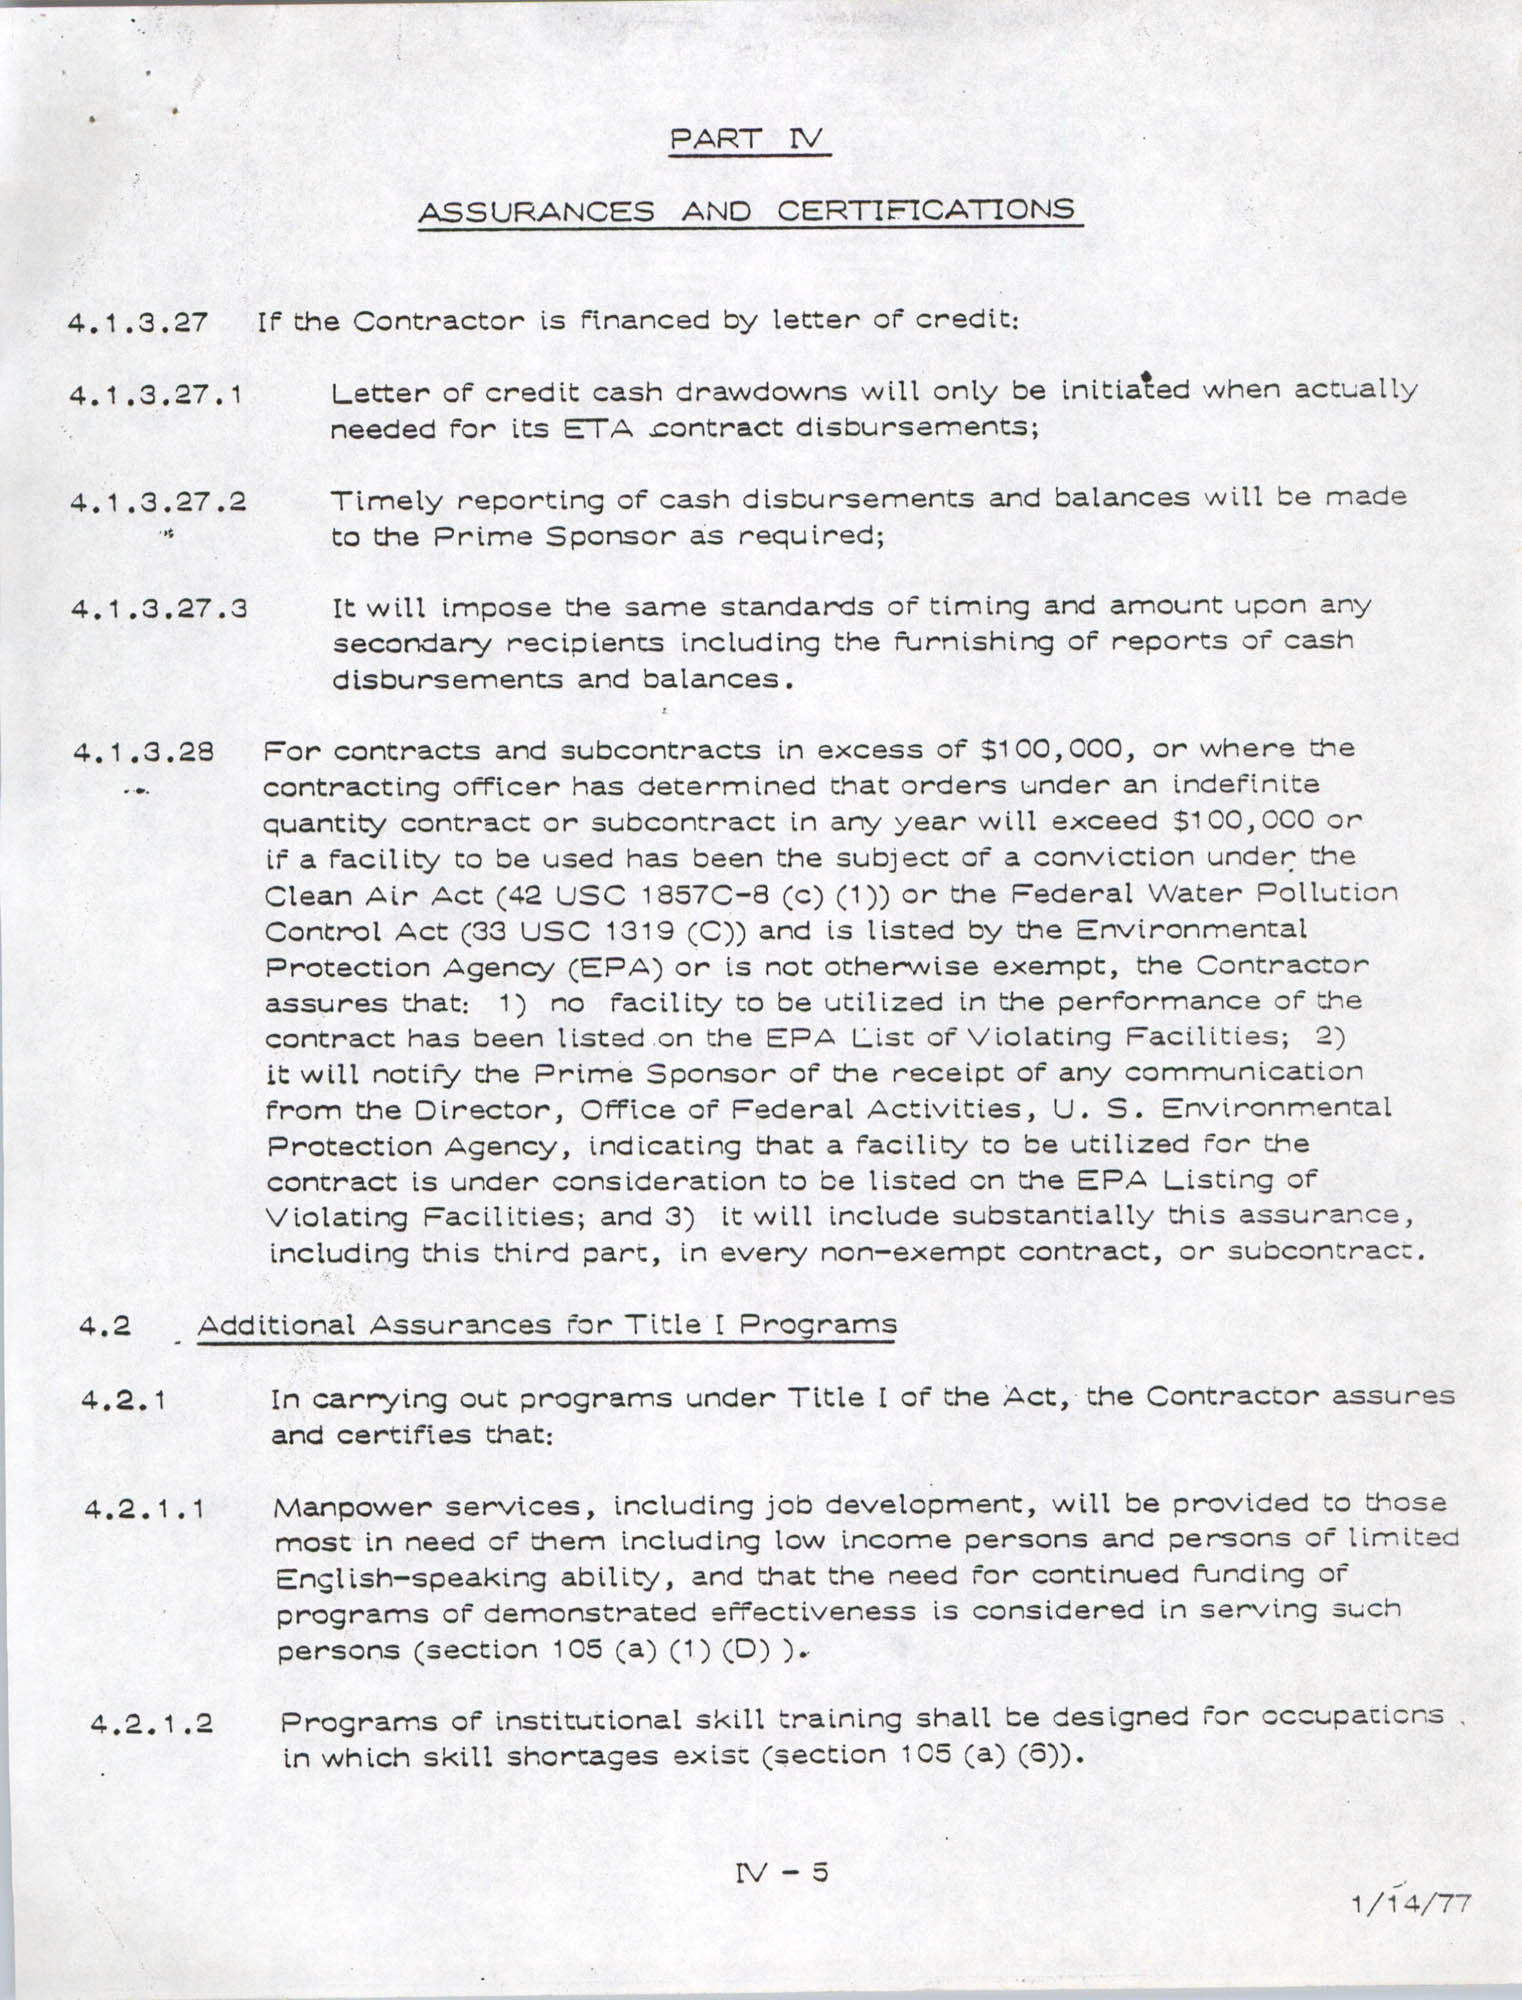 Assurances and Certifications, Page 5